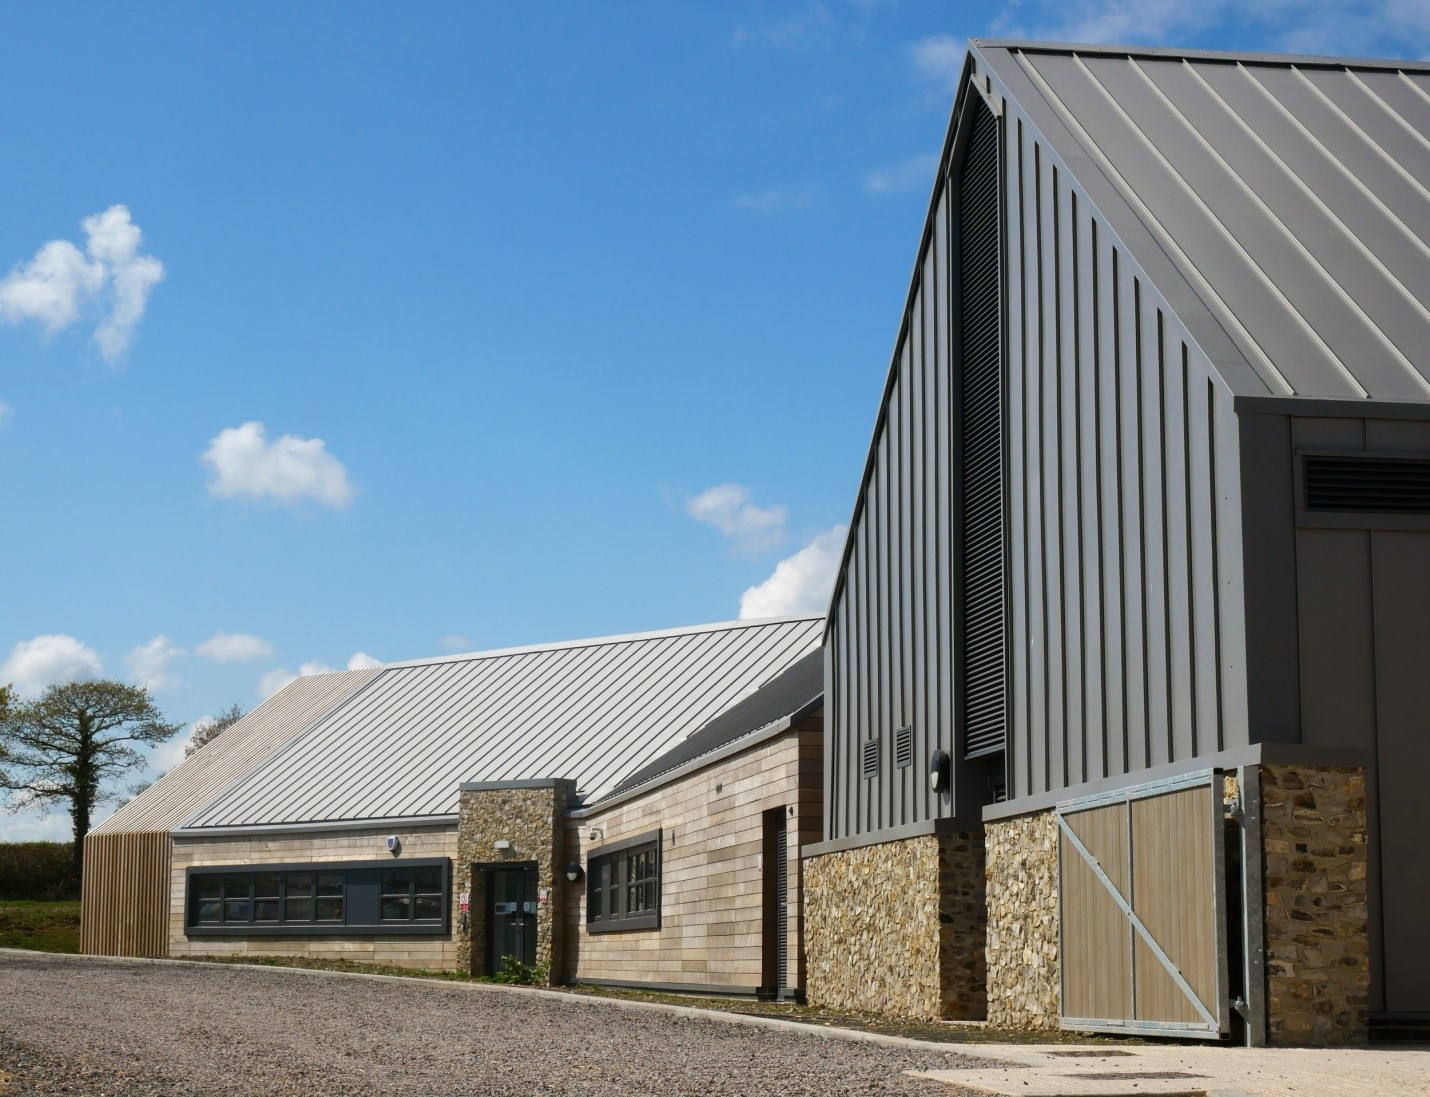 Veterinary Hospital Services In A New Metal Fabricated Building